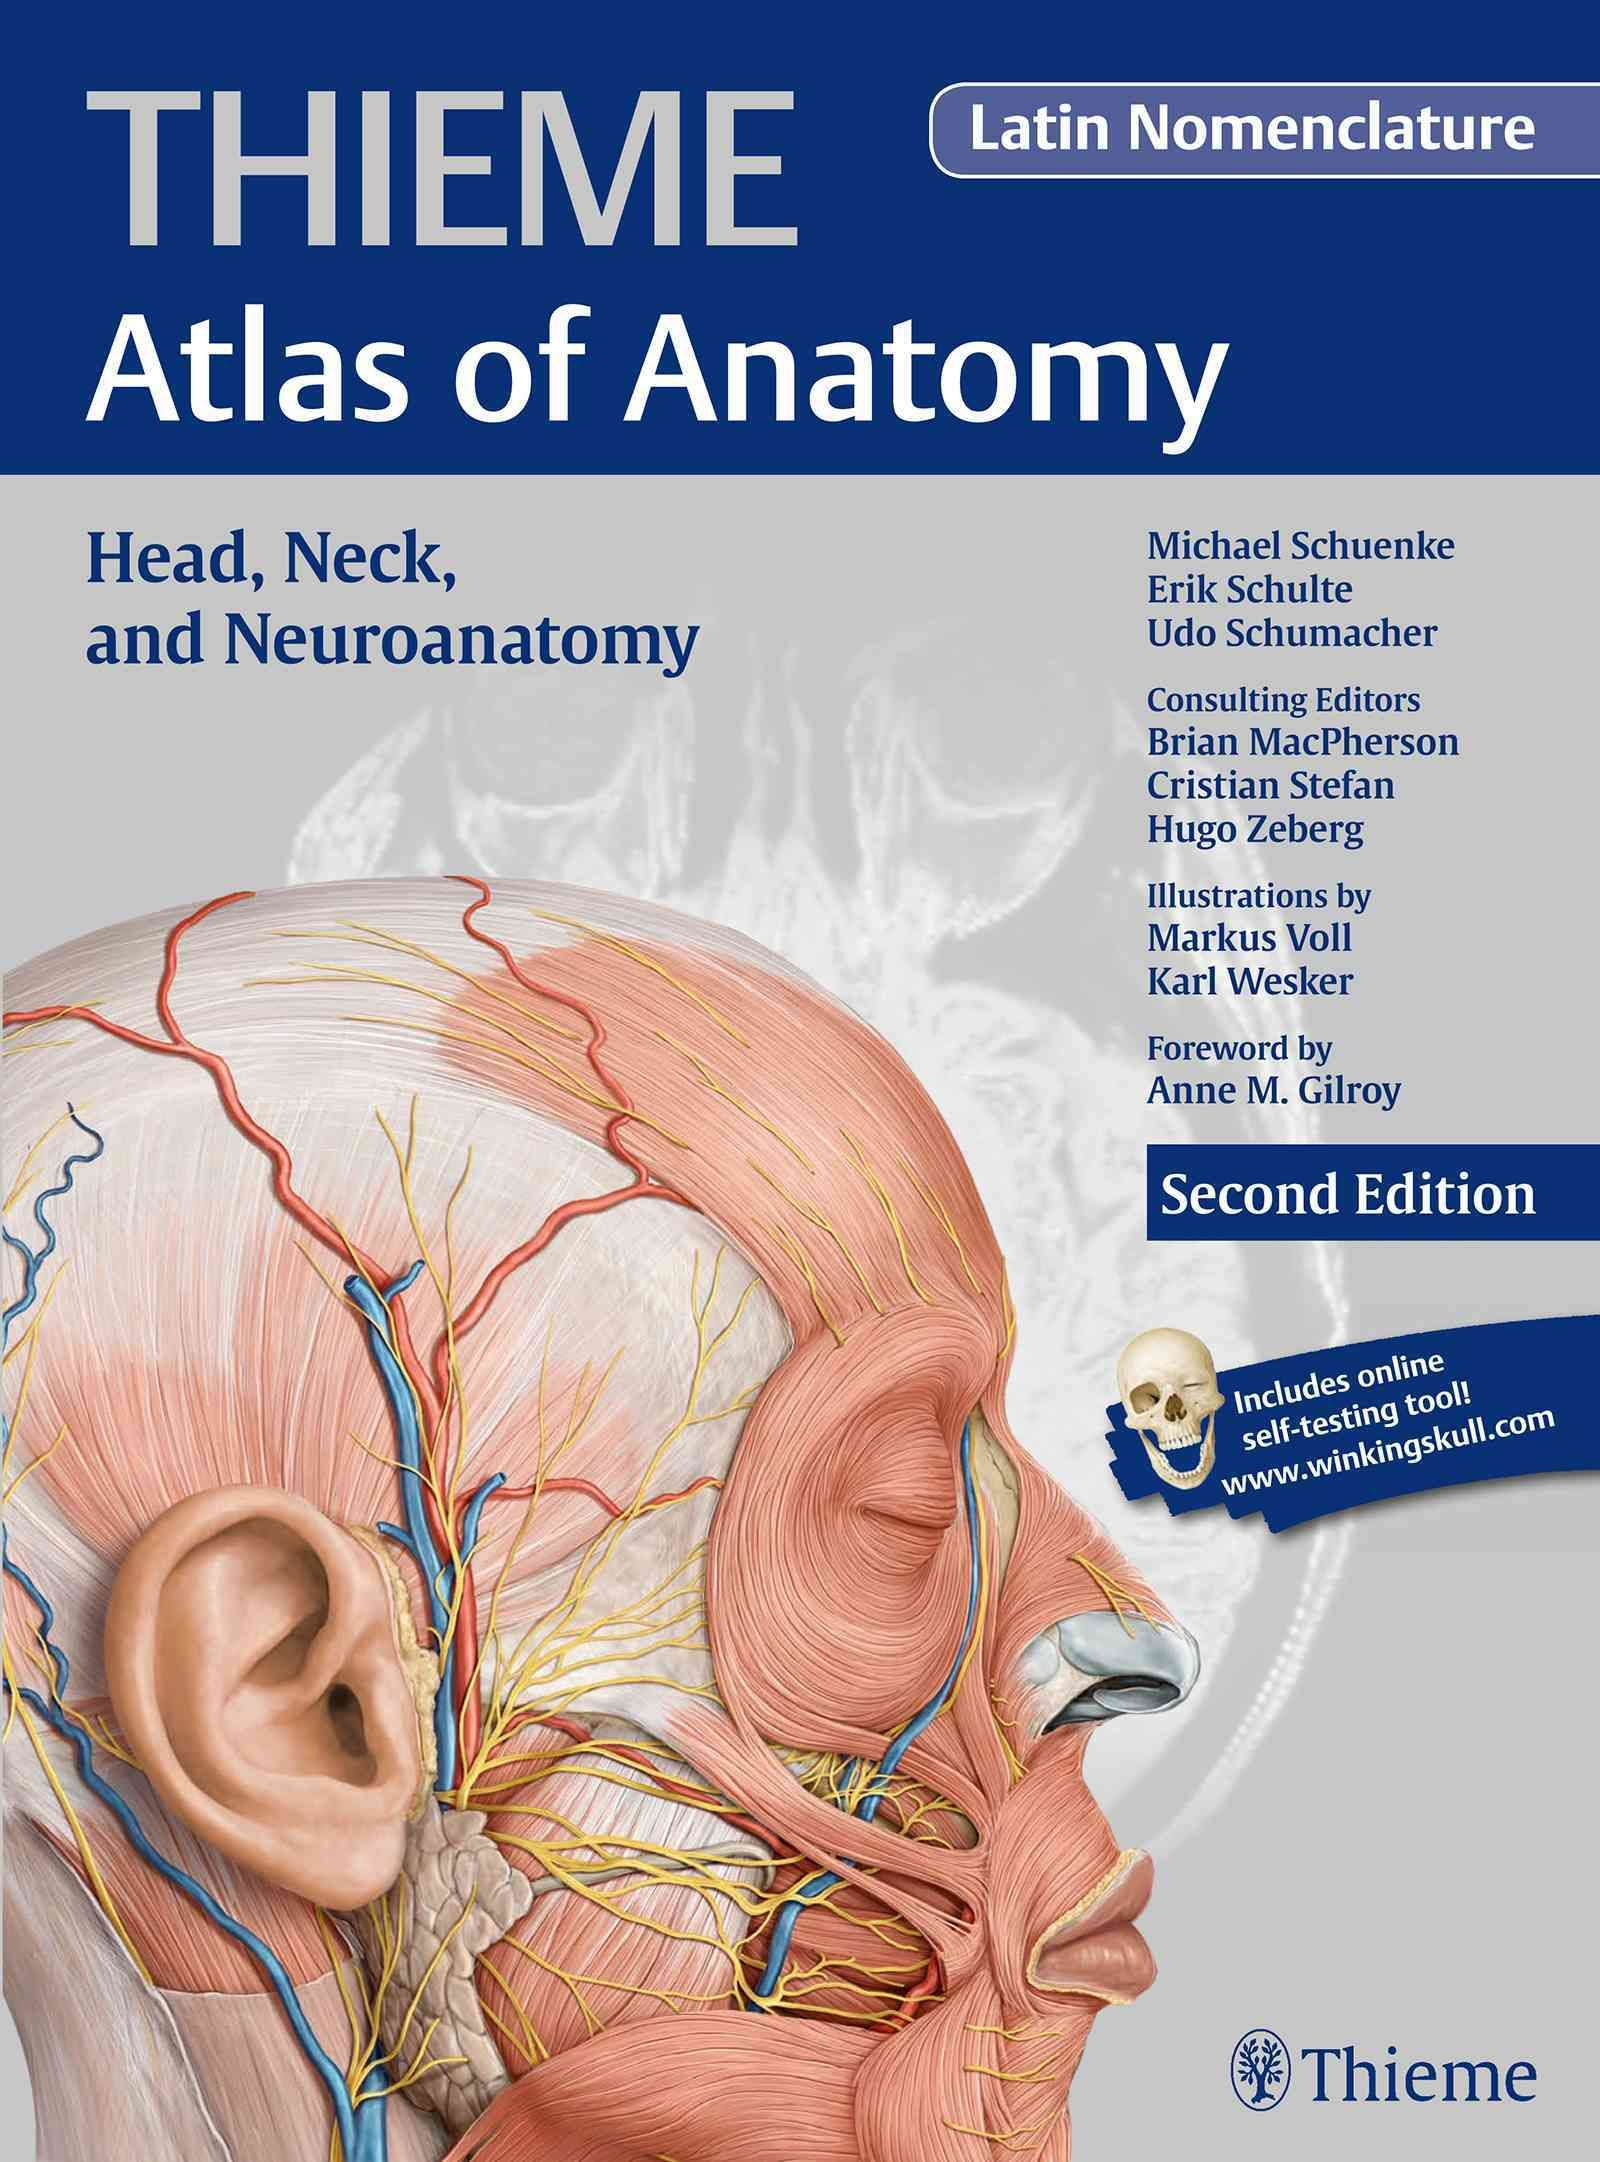 Head Neck And Neuroanatomy Latin Nomenclature Products